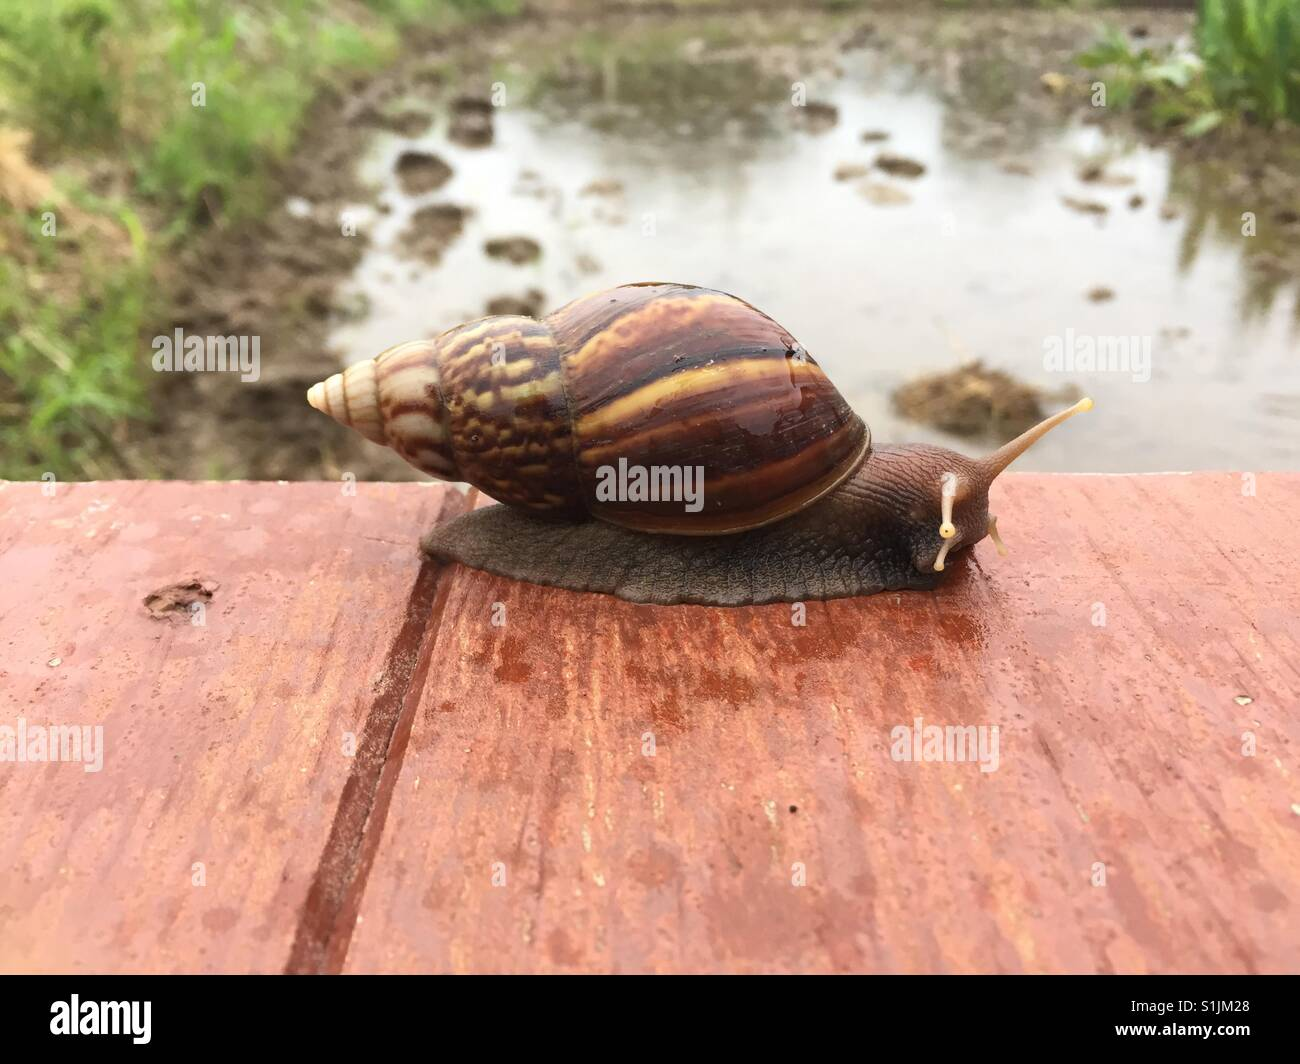 Snail with slow life Stock Photo